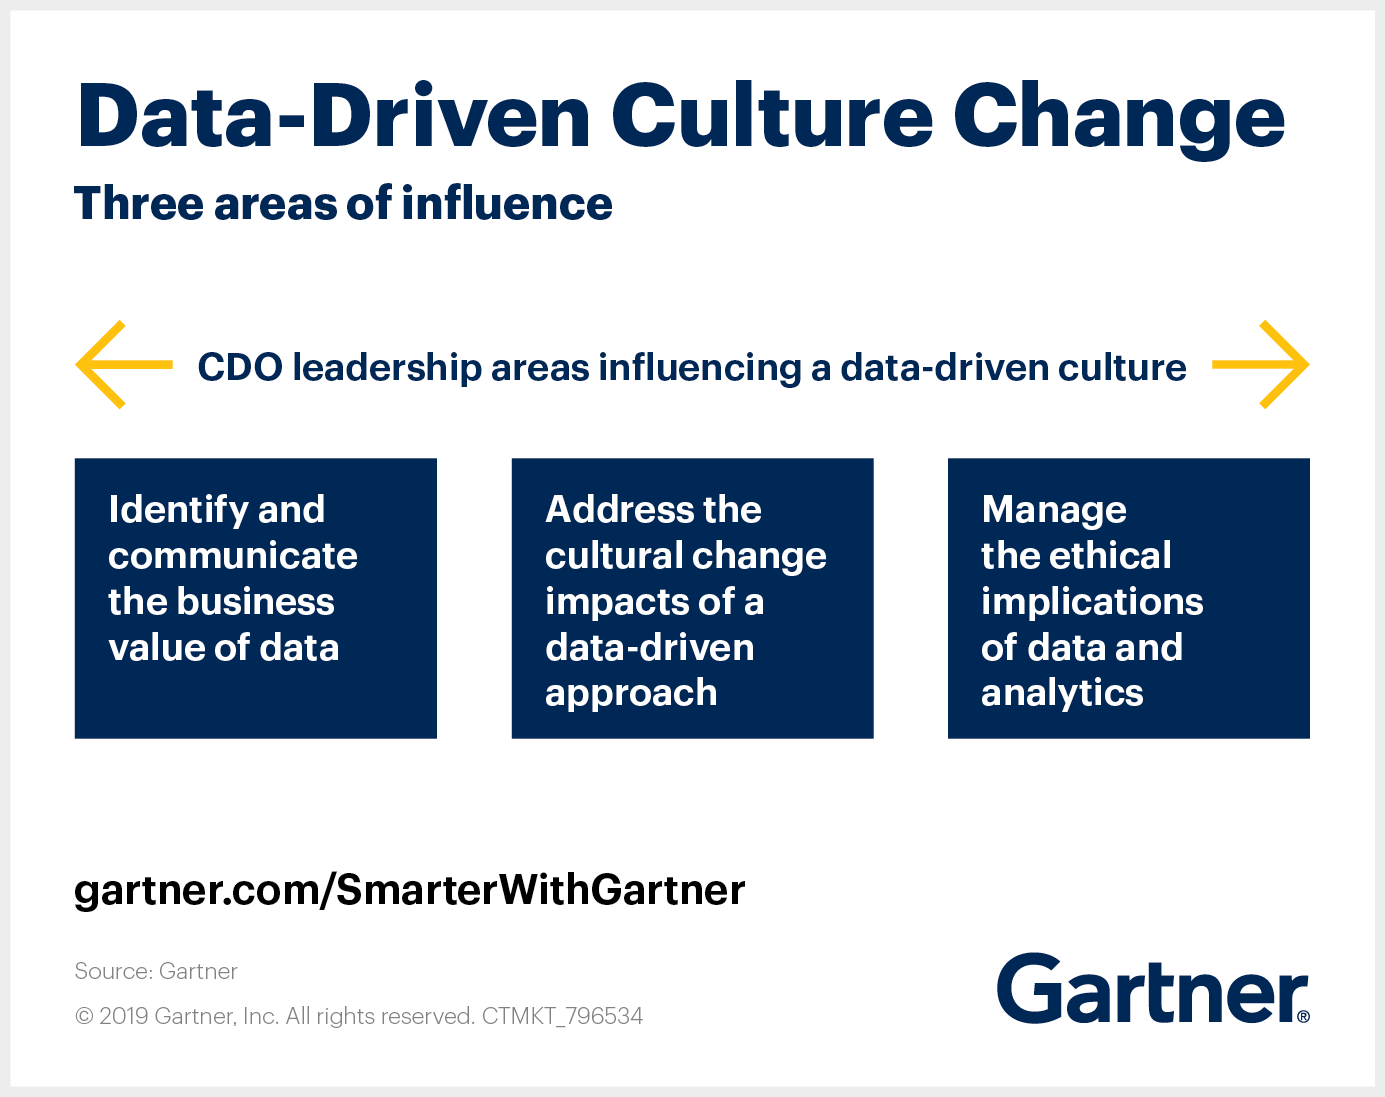 Create a Data Driven Culture by Influencing 20 Areas